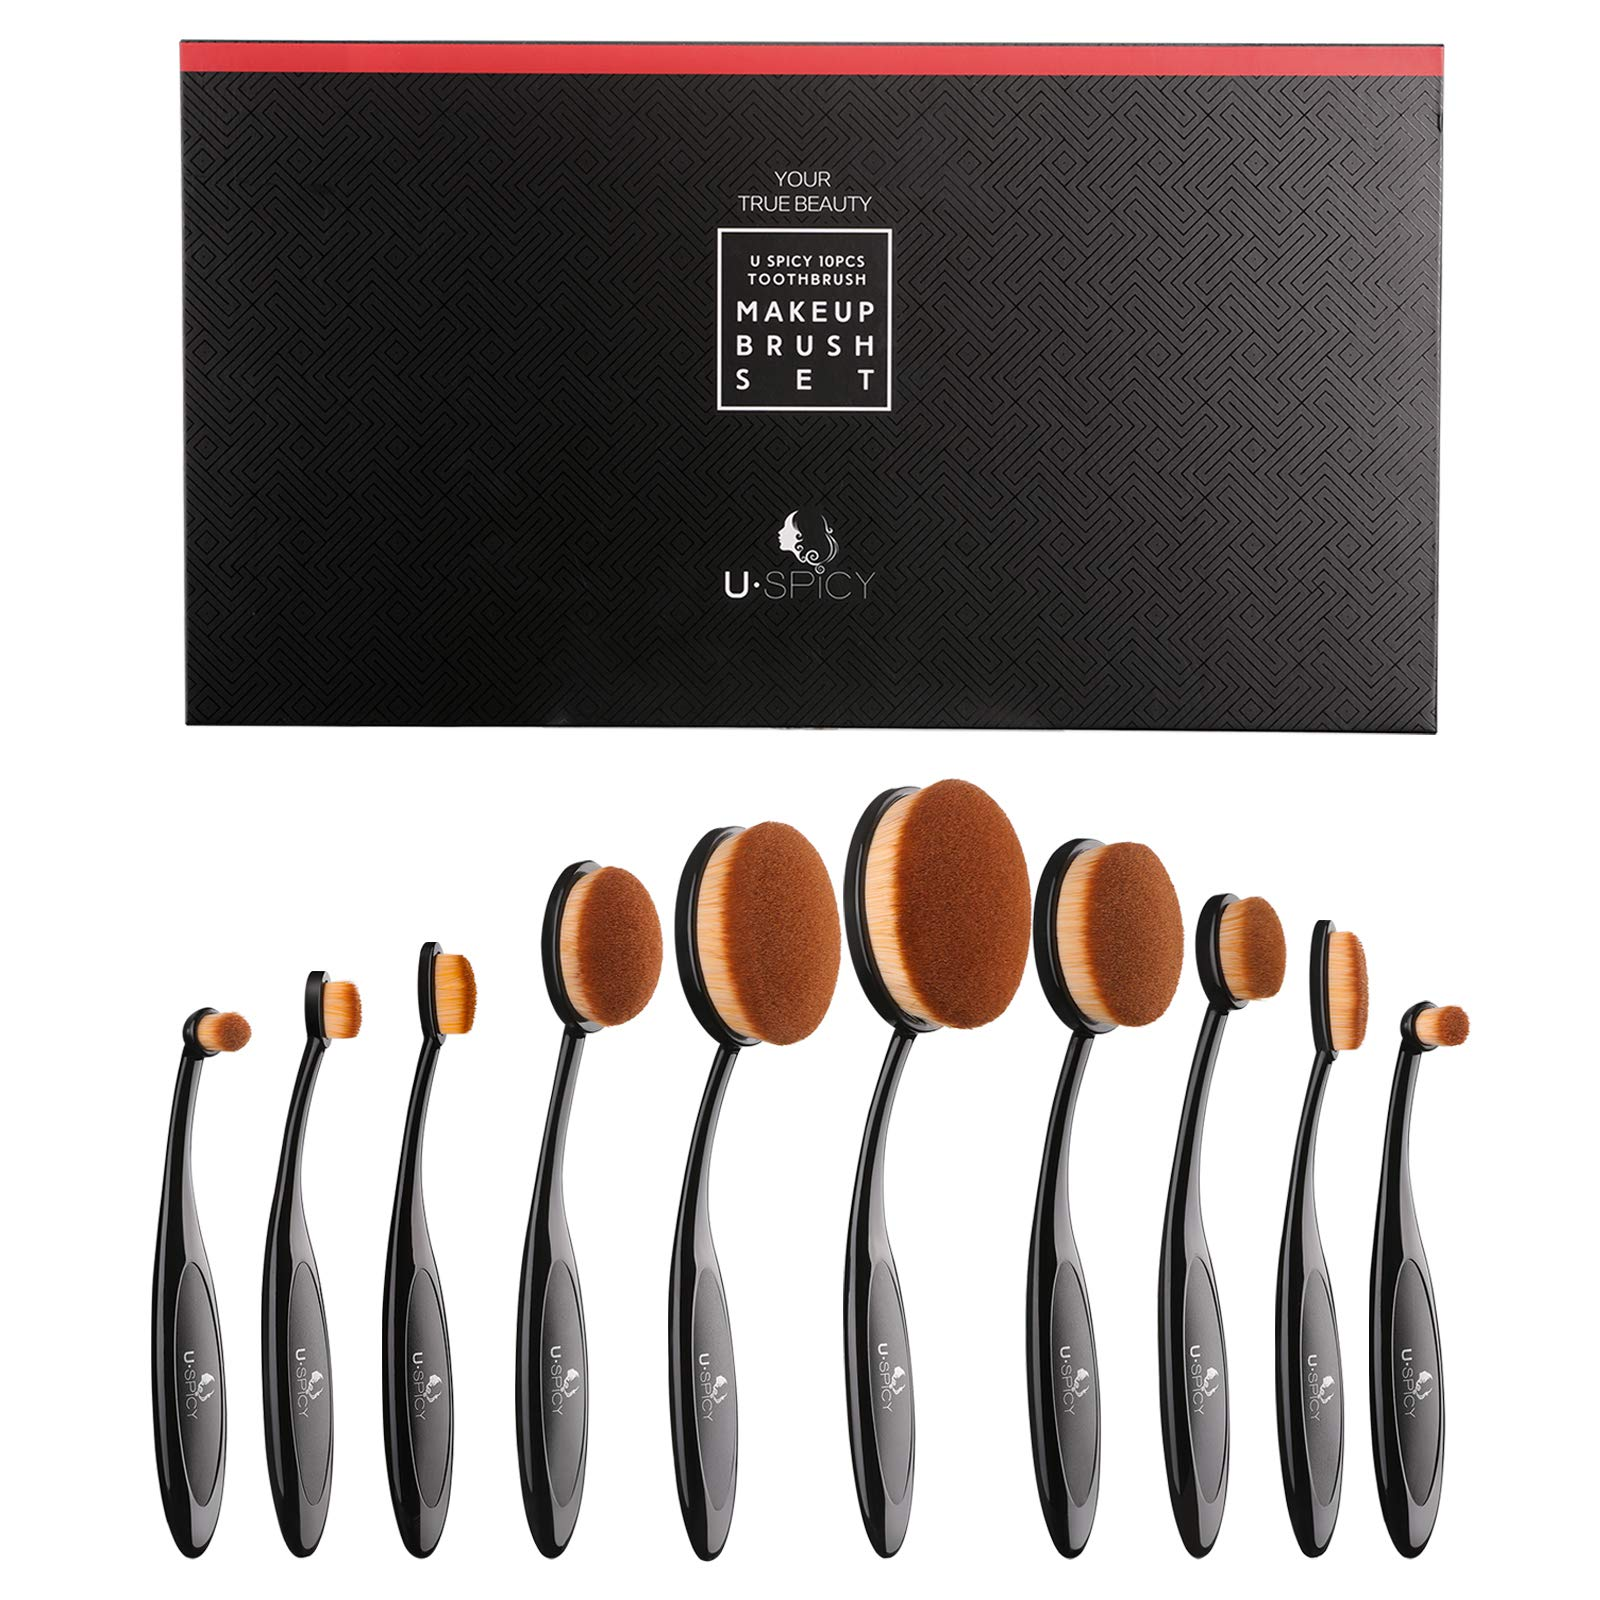 Makeup Brush Set, USpicy Professional 10 Pieces Oval Makeup Brushes With Refined Gift Box, Soft Toothbrush Shaped Design For Foundation, Concealer, ...